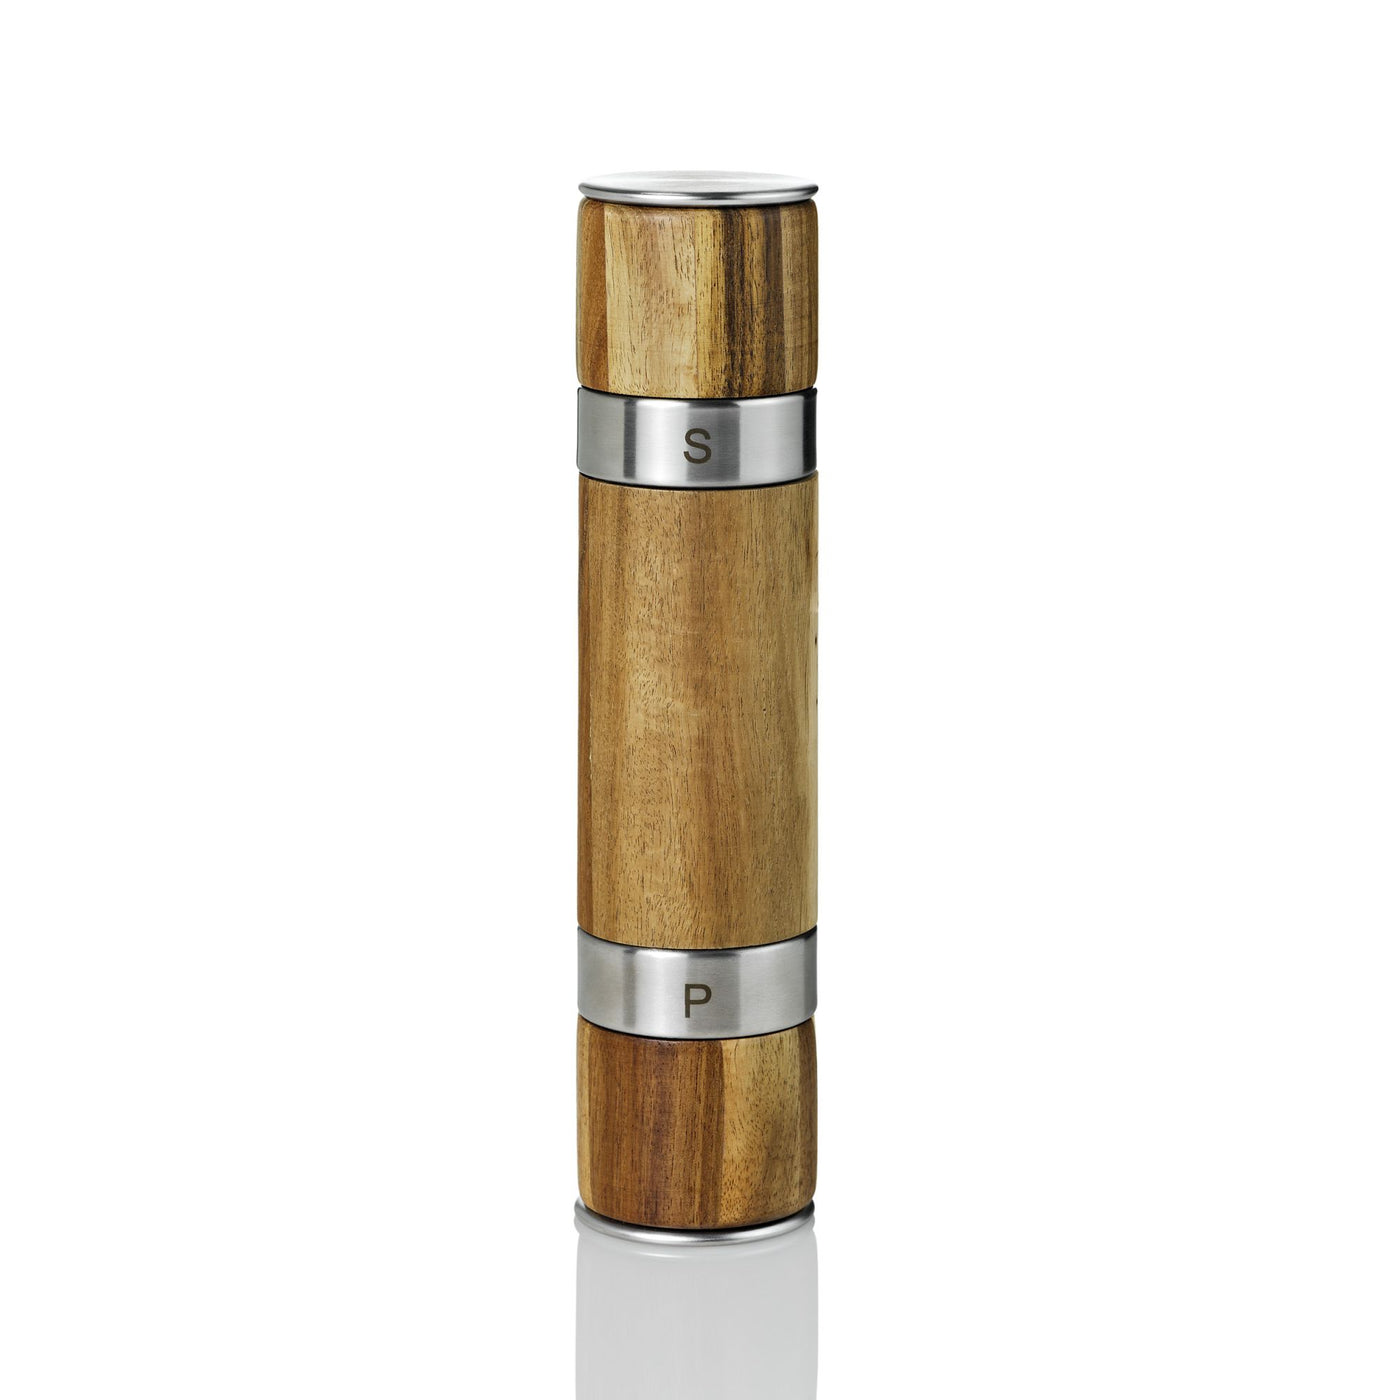 Pepper + Salt Double Mill in Stainless Steel